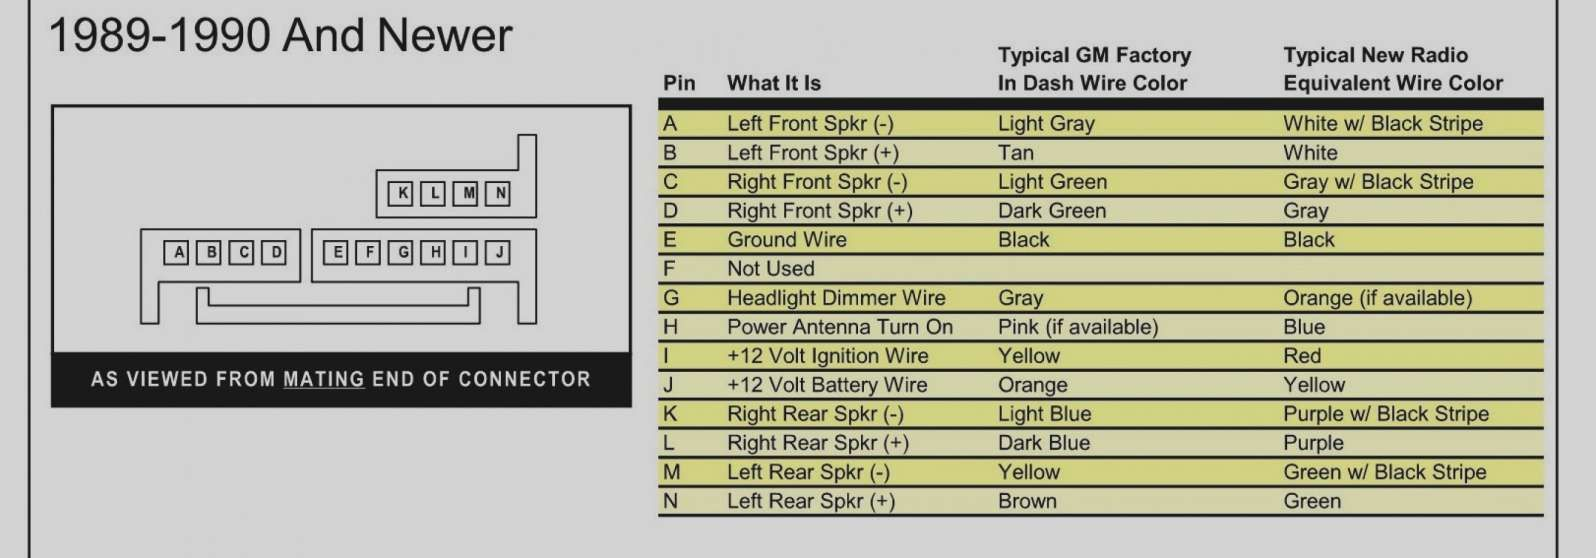 1998 Chevrolet Truck Wiring Diagram and Chevy Silverado Stereo Wiring  Diagram - Wiring Diagrams | Chevy, Chevy tahoe, Chevy express | 98 Chevy Radio Wiring Diagram |  | Pinterest